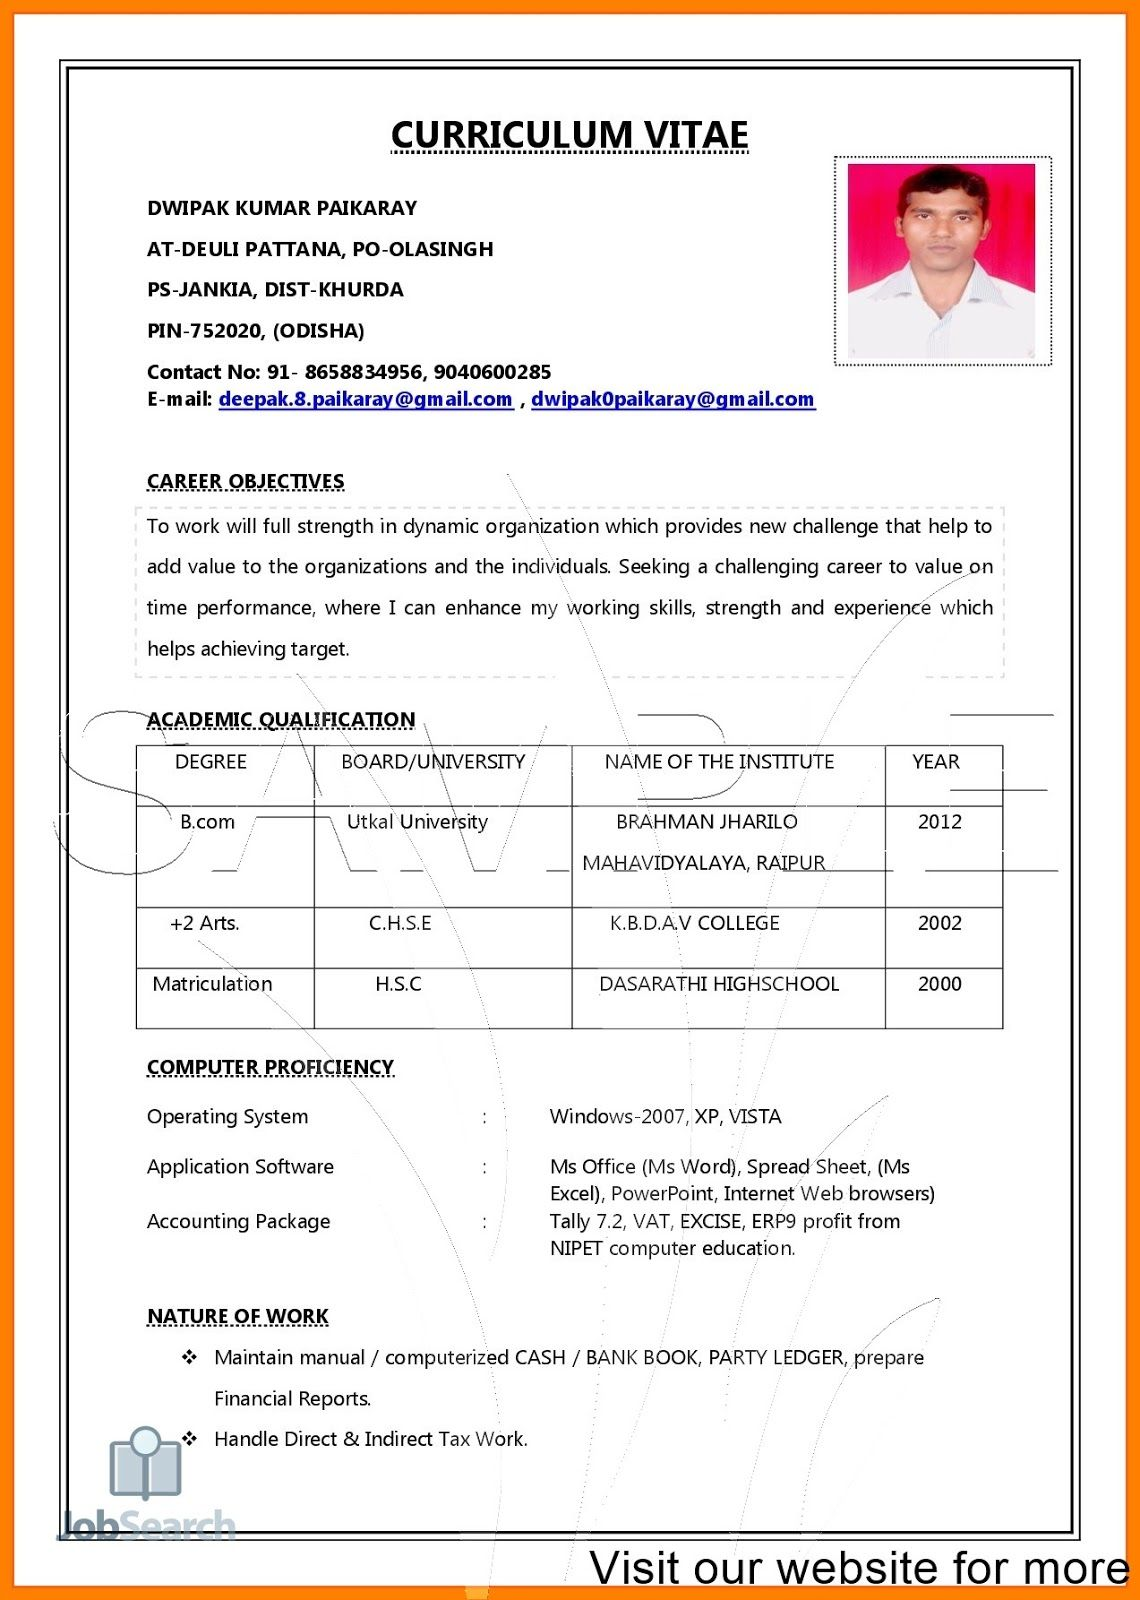 job resume pdf job resume pdf download job resume pdf file